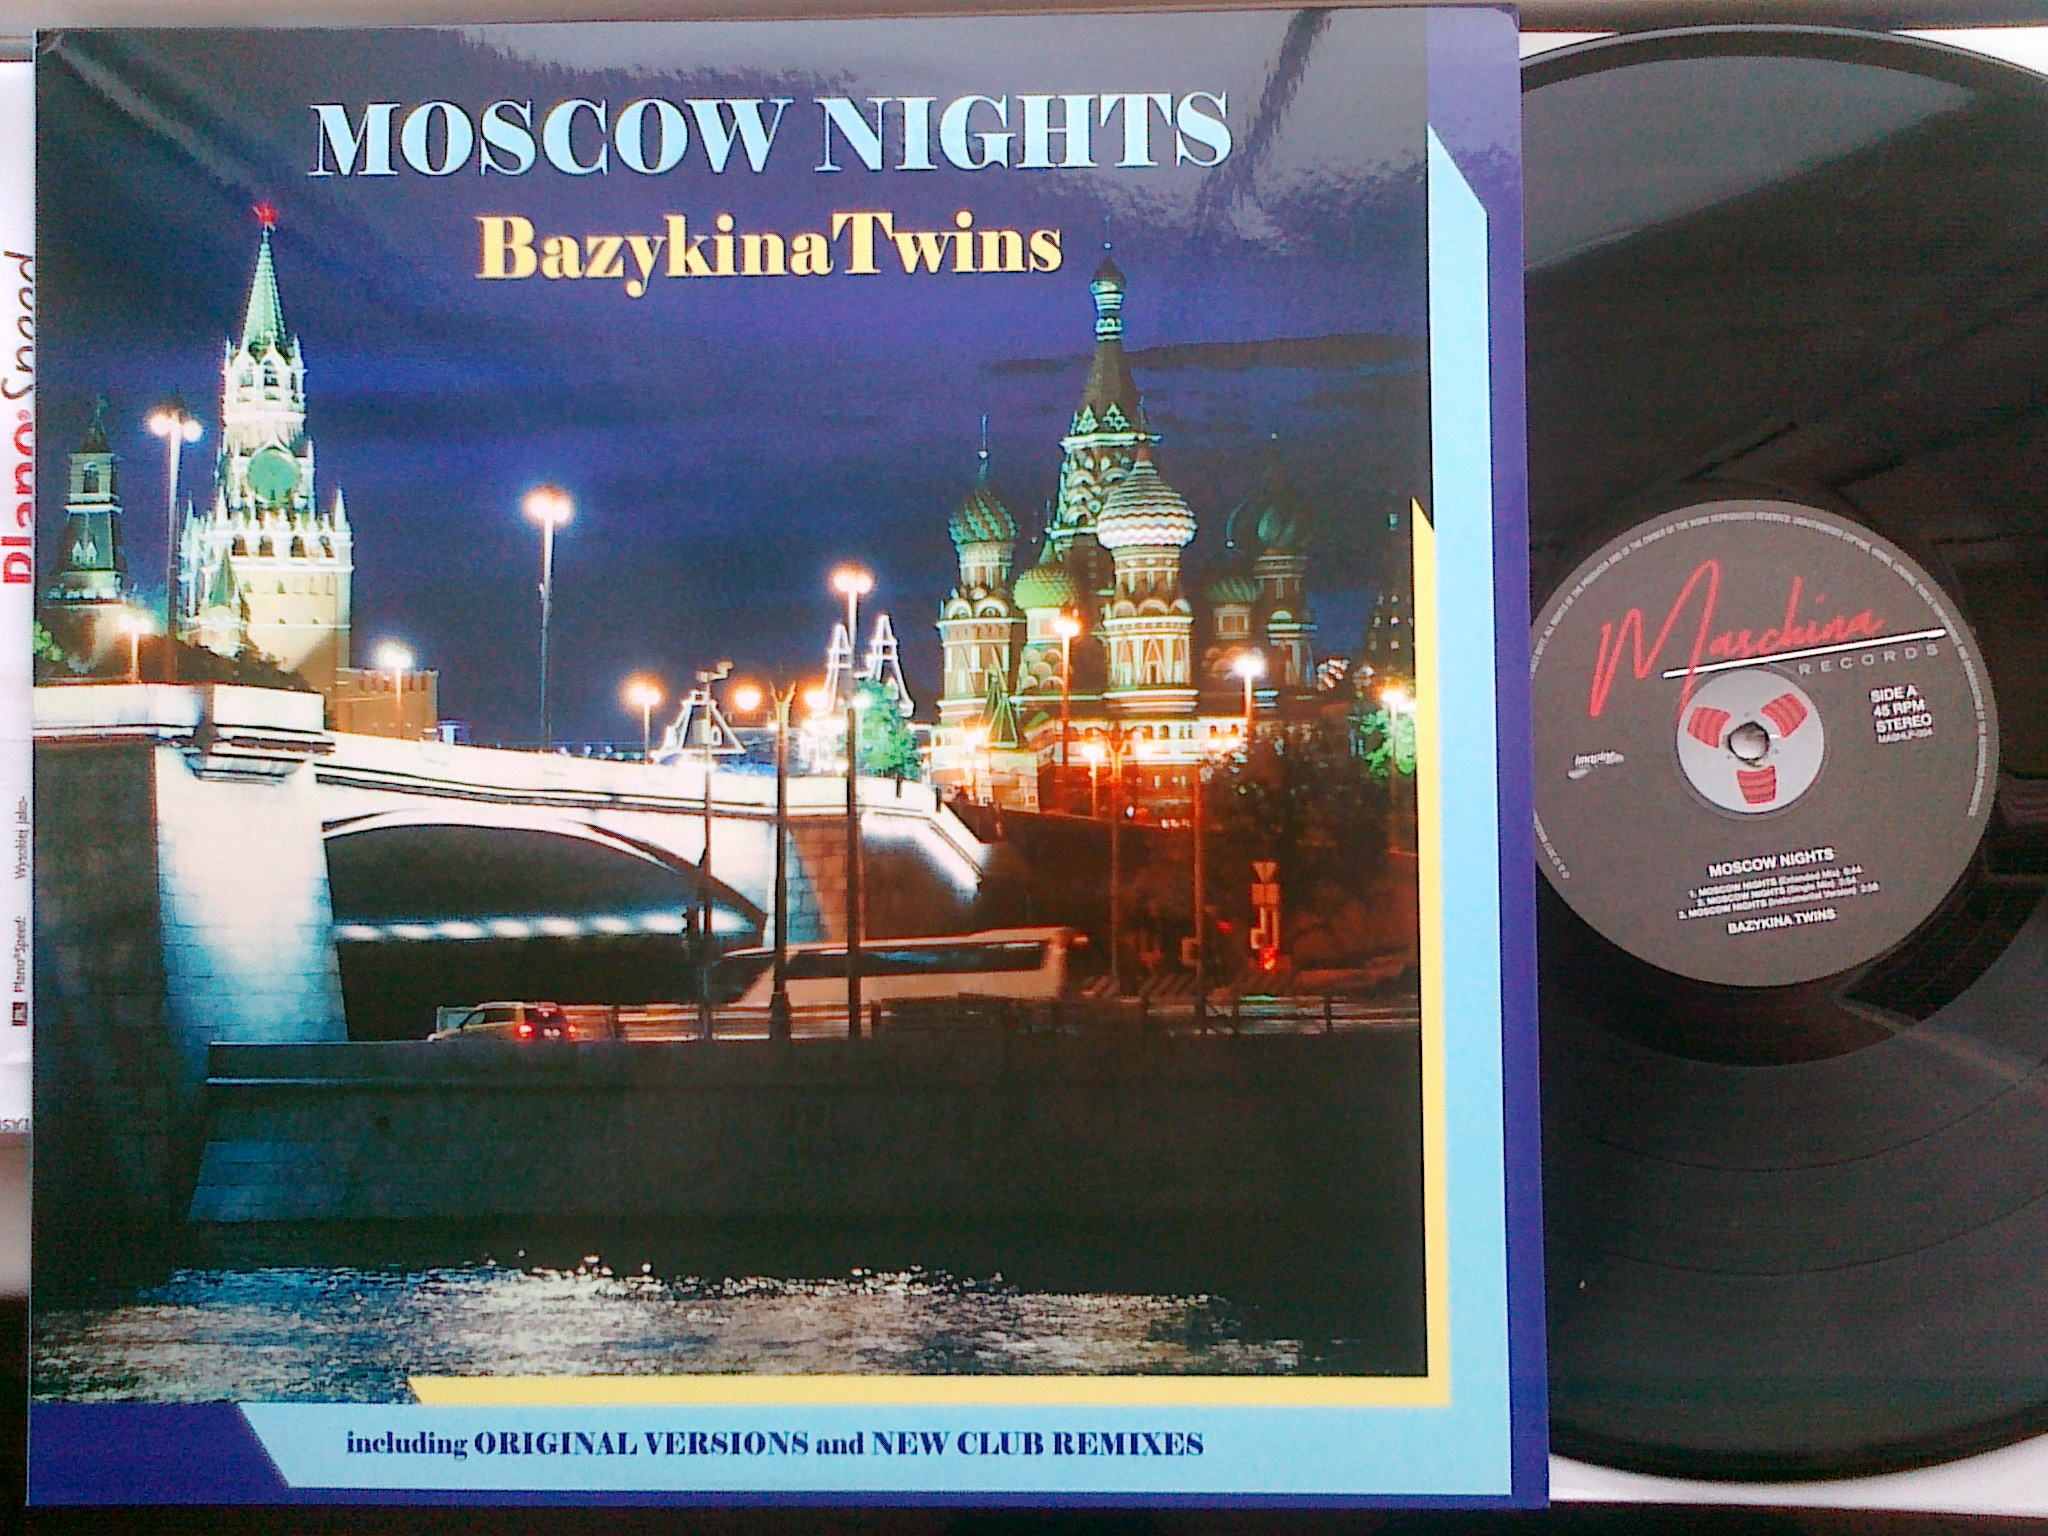 Bazykina Twins - Mscow Nights